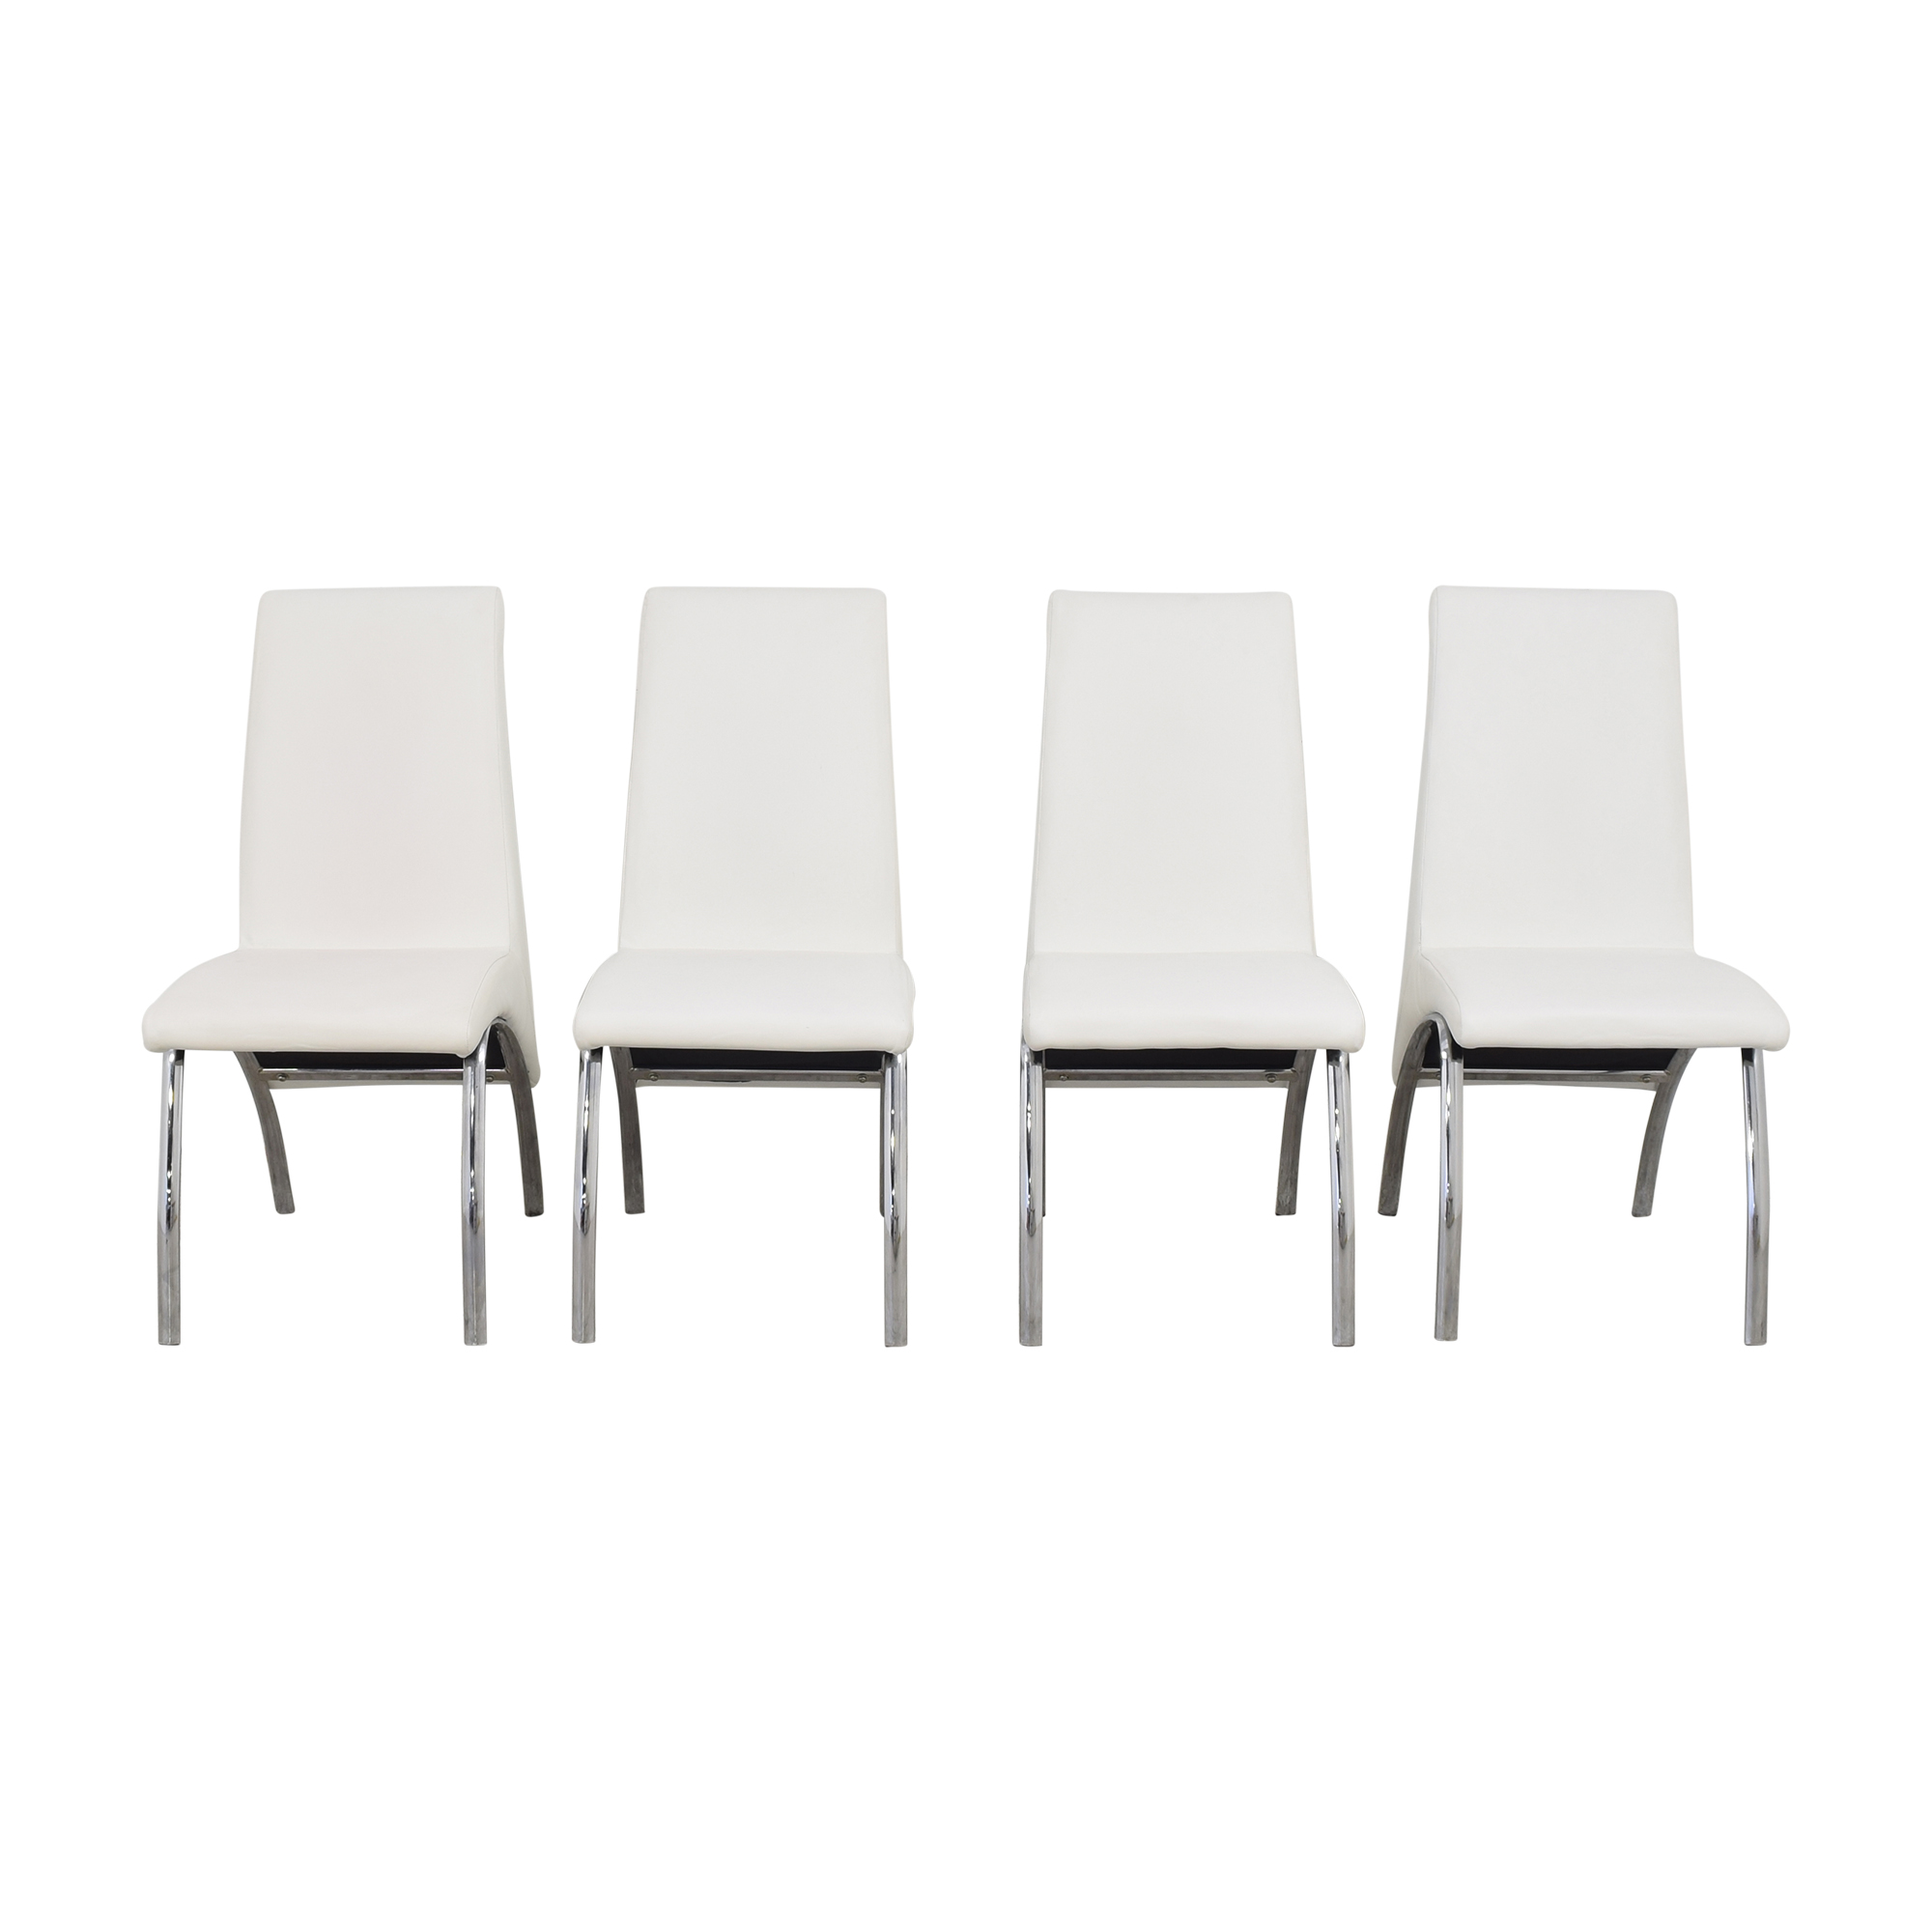 Furniture World Furniture World Contemporary Dining Chairs